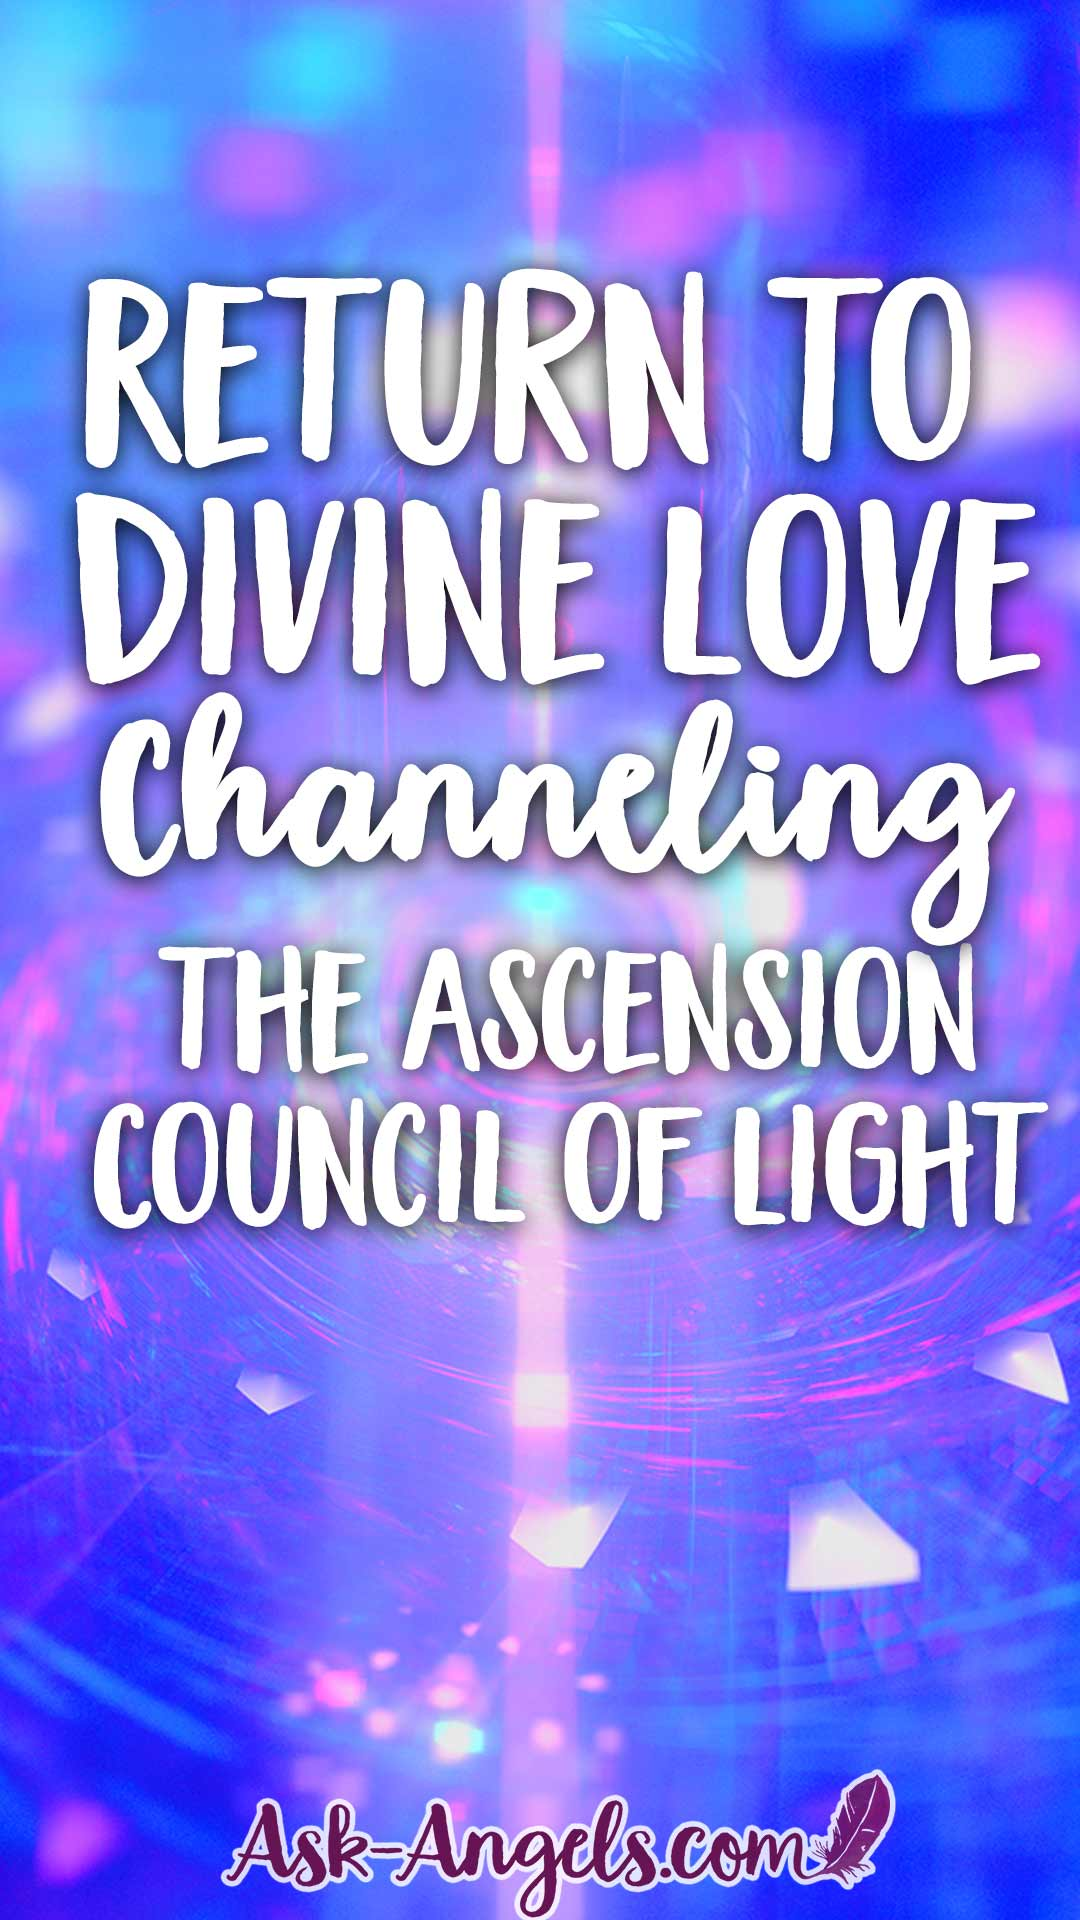 Return to Divine Love- Channeling the Ascension Council of Light